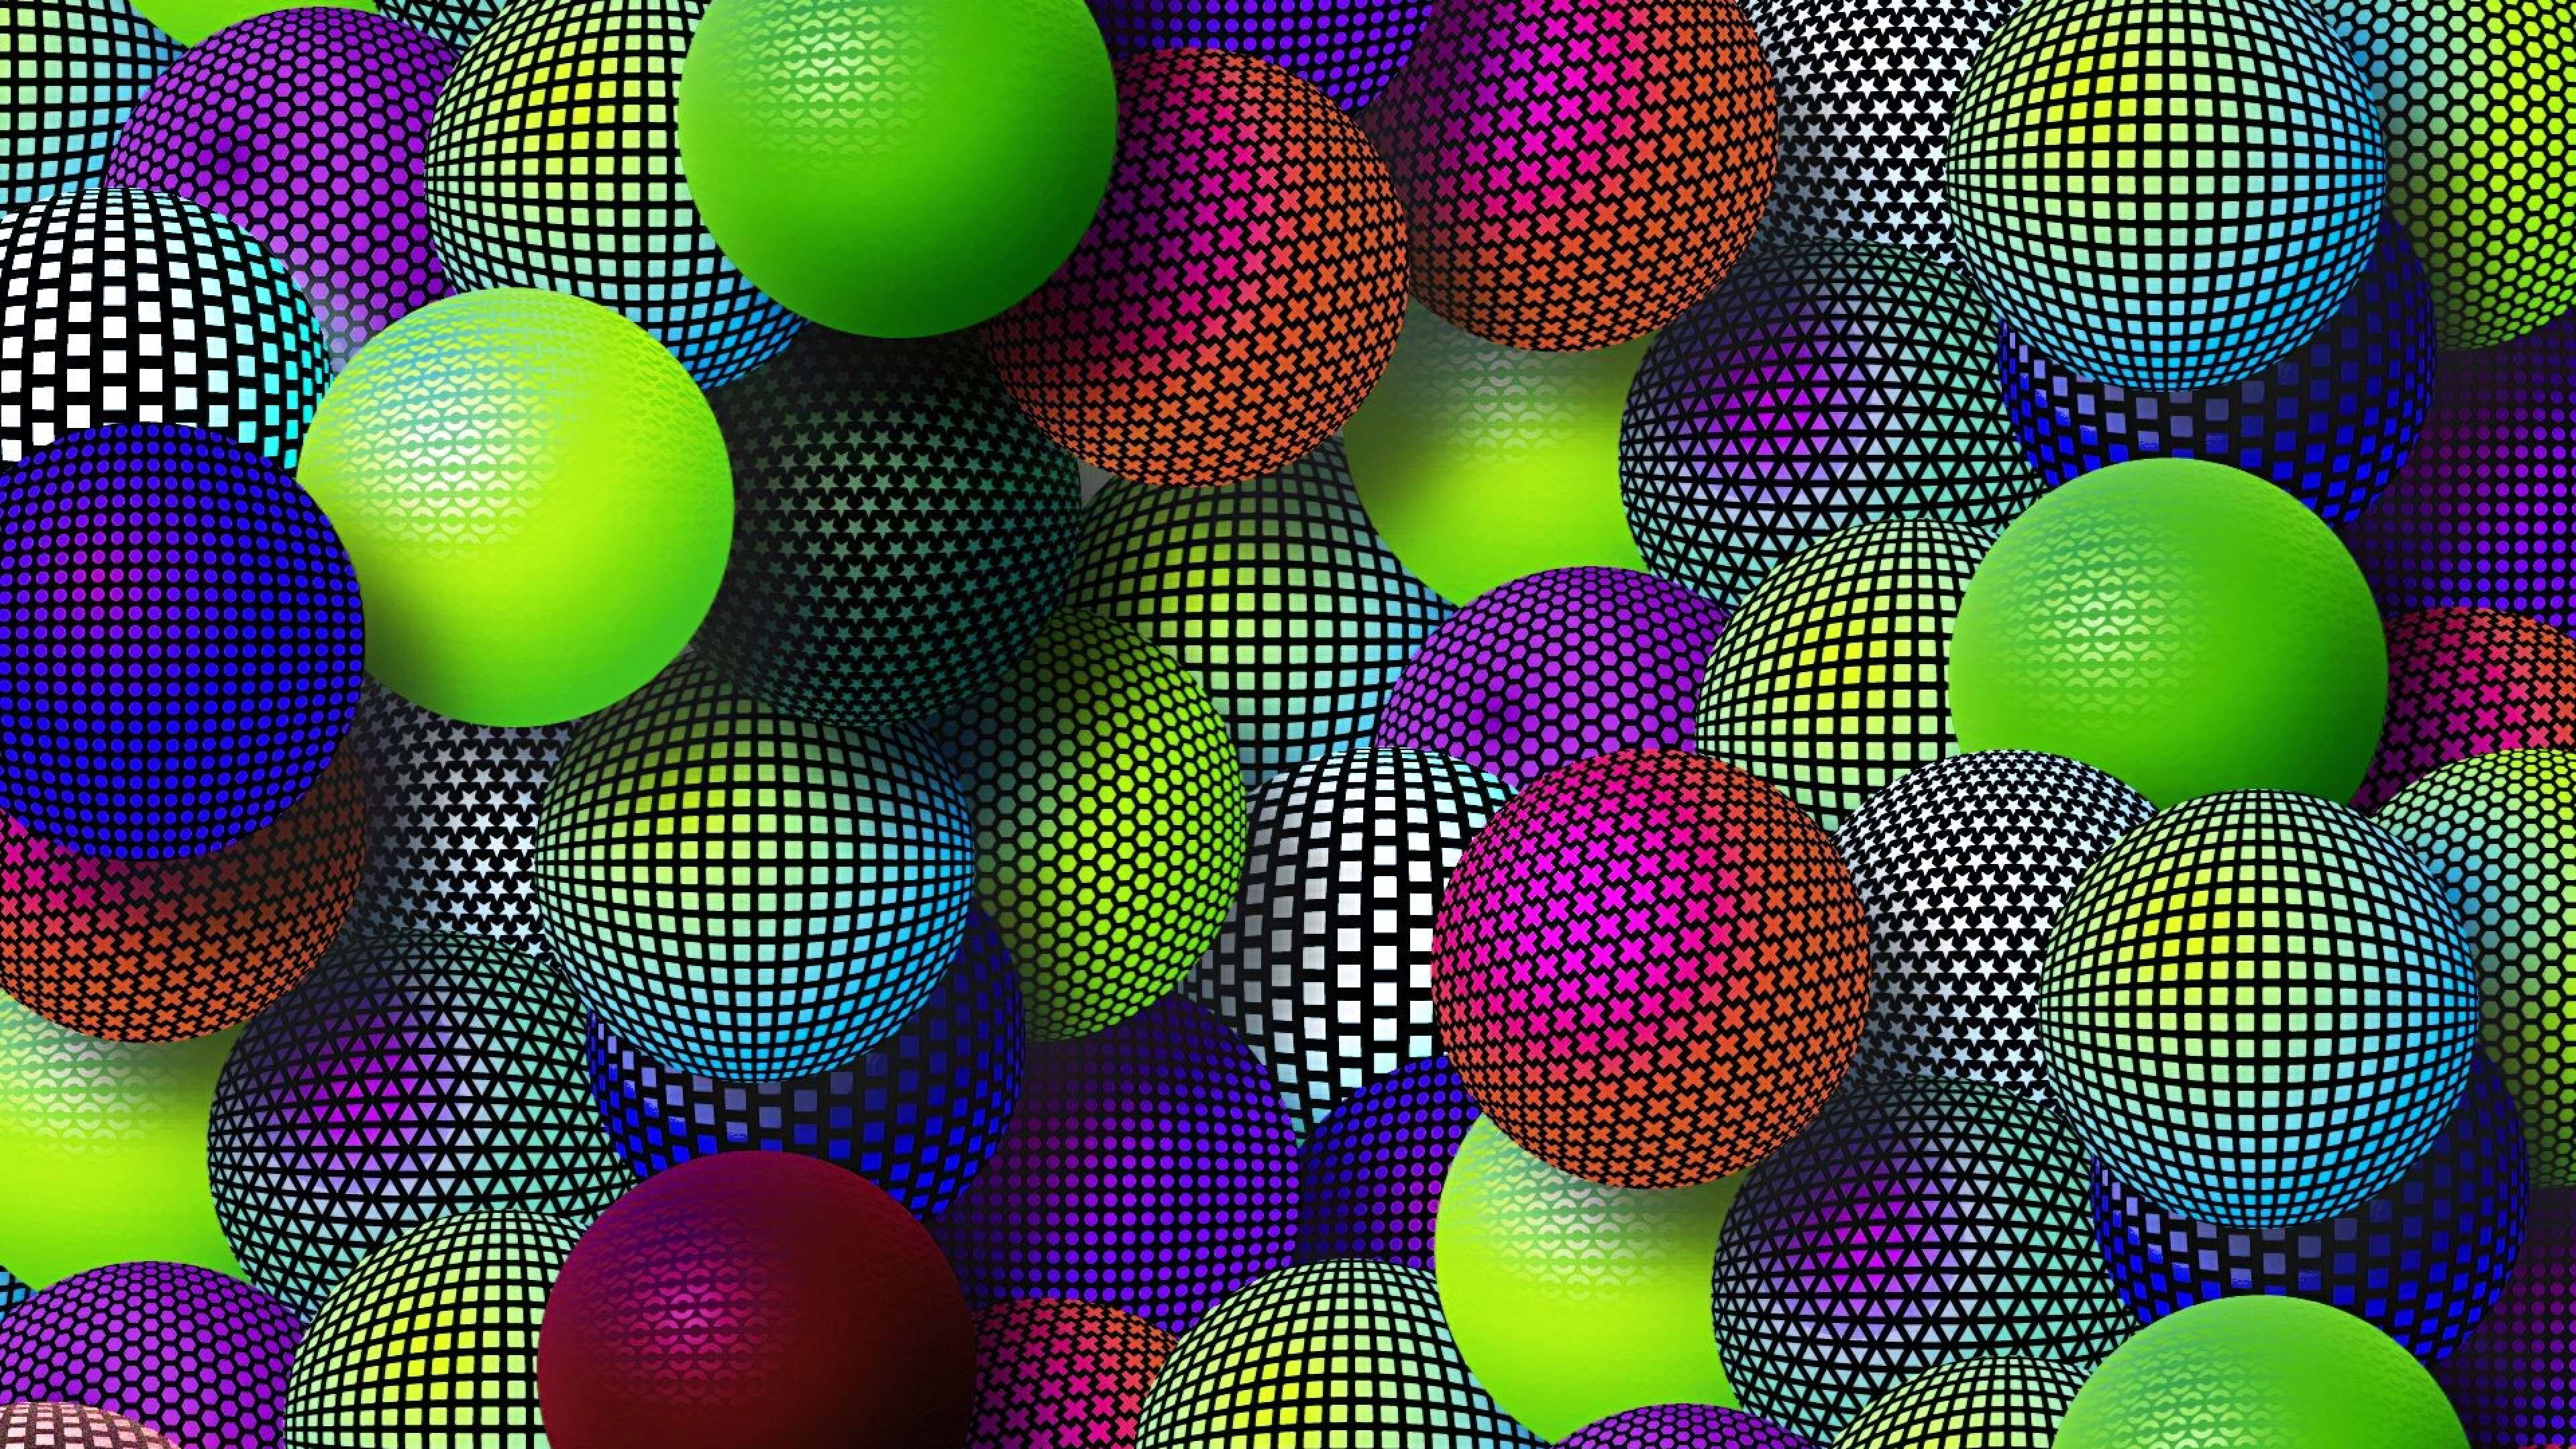 Download-Wallpaper-3840x2160-Balloons-Colorful-Mesh-Set-Variety-4K-...